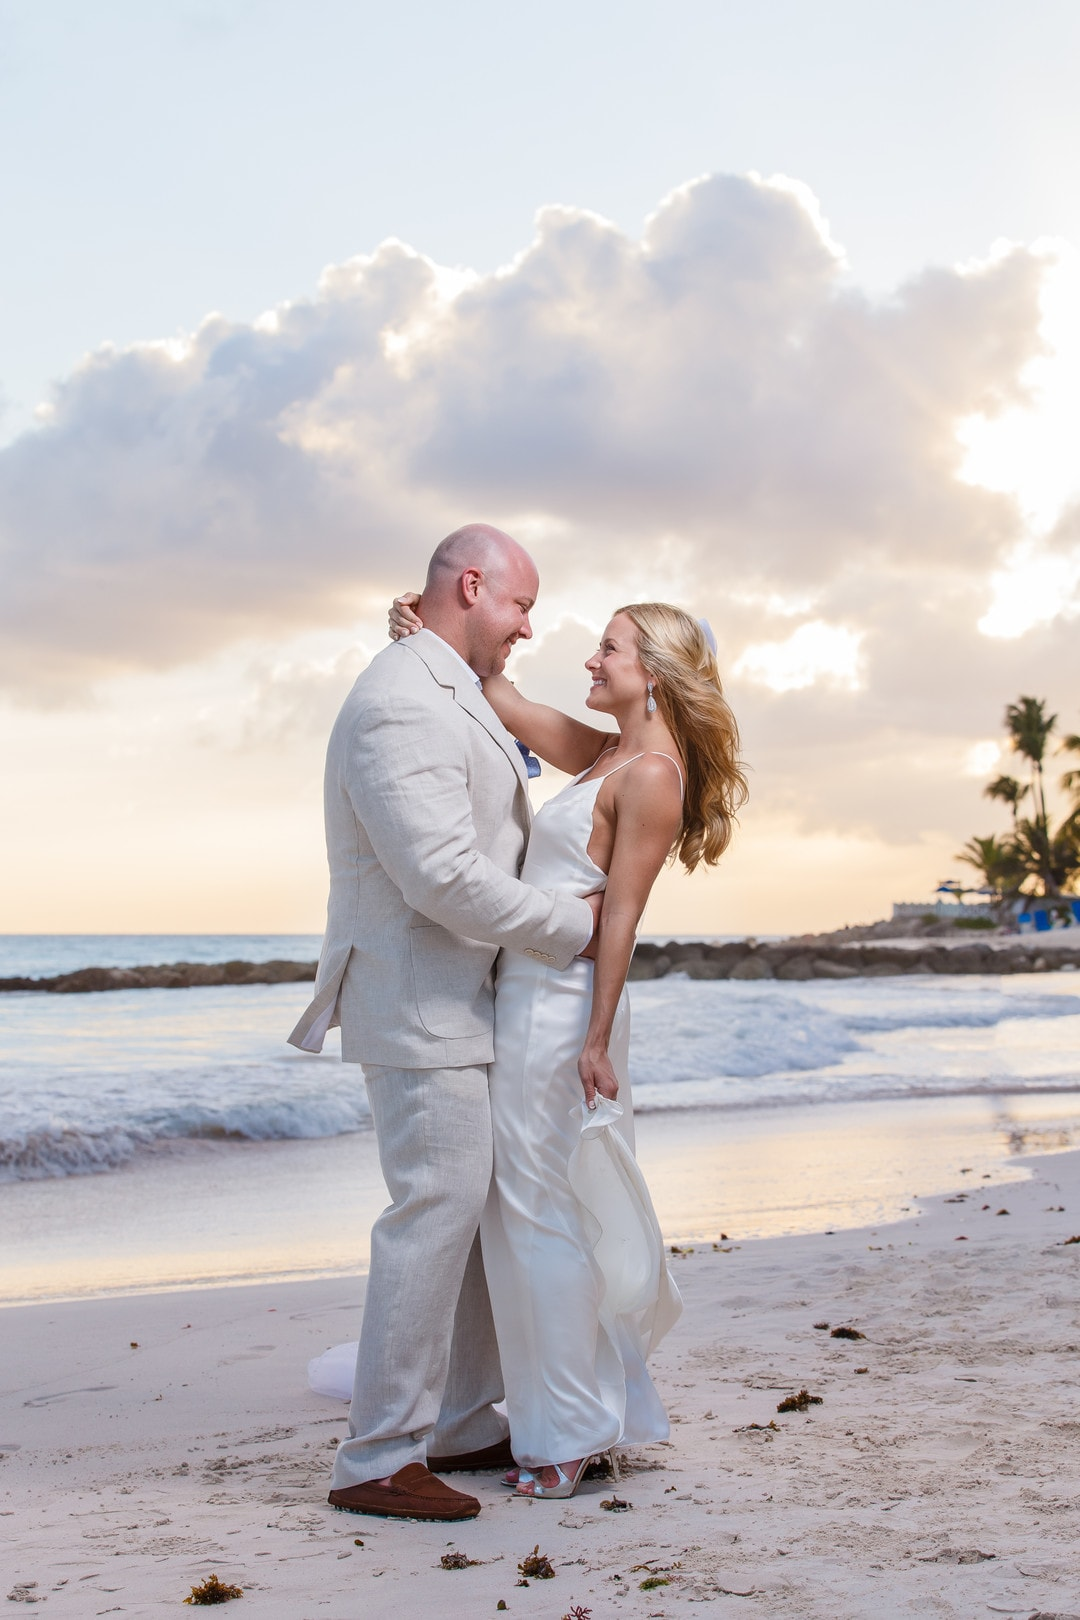 Breathtaking Destination Wedding In Barbados, Photography by Amy Bennett Photography for Destination Wedding Blog Adriana Weddings